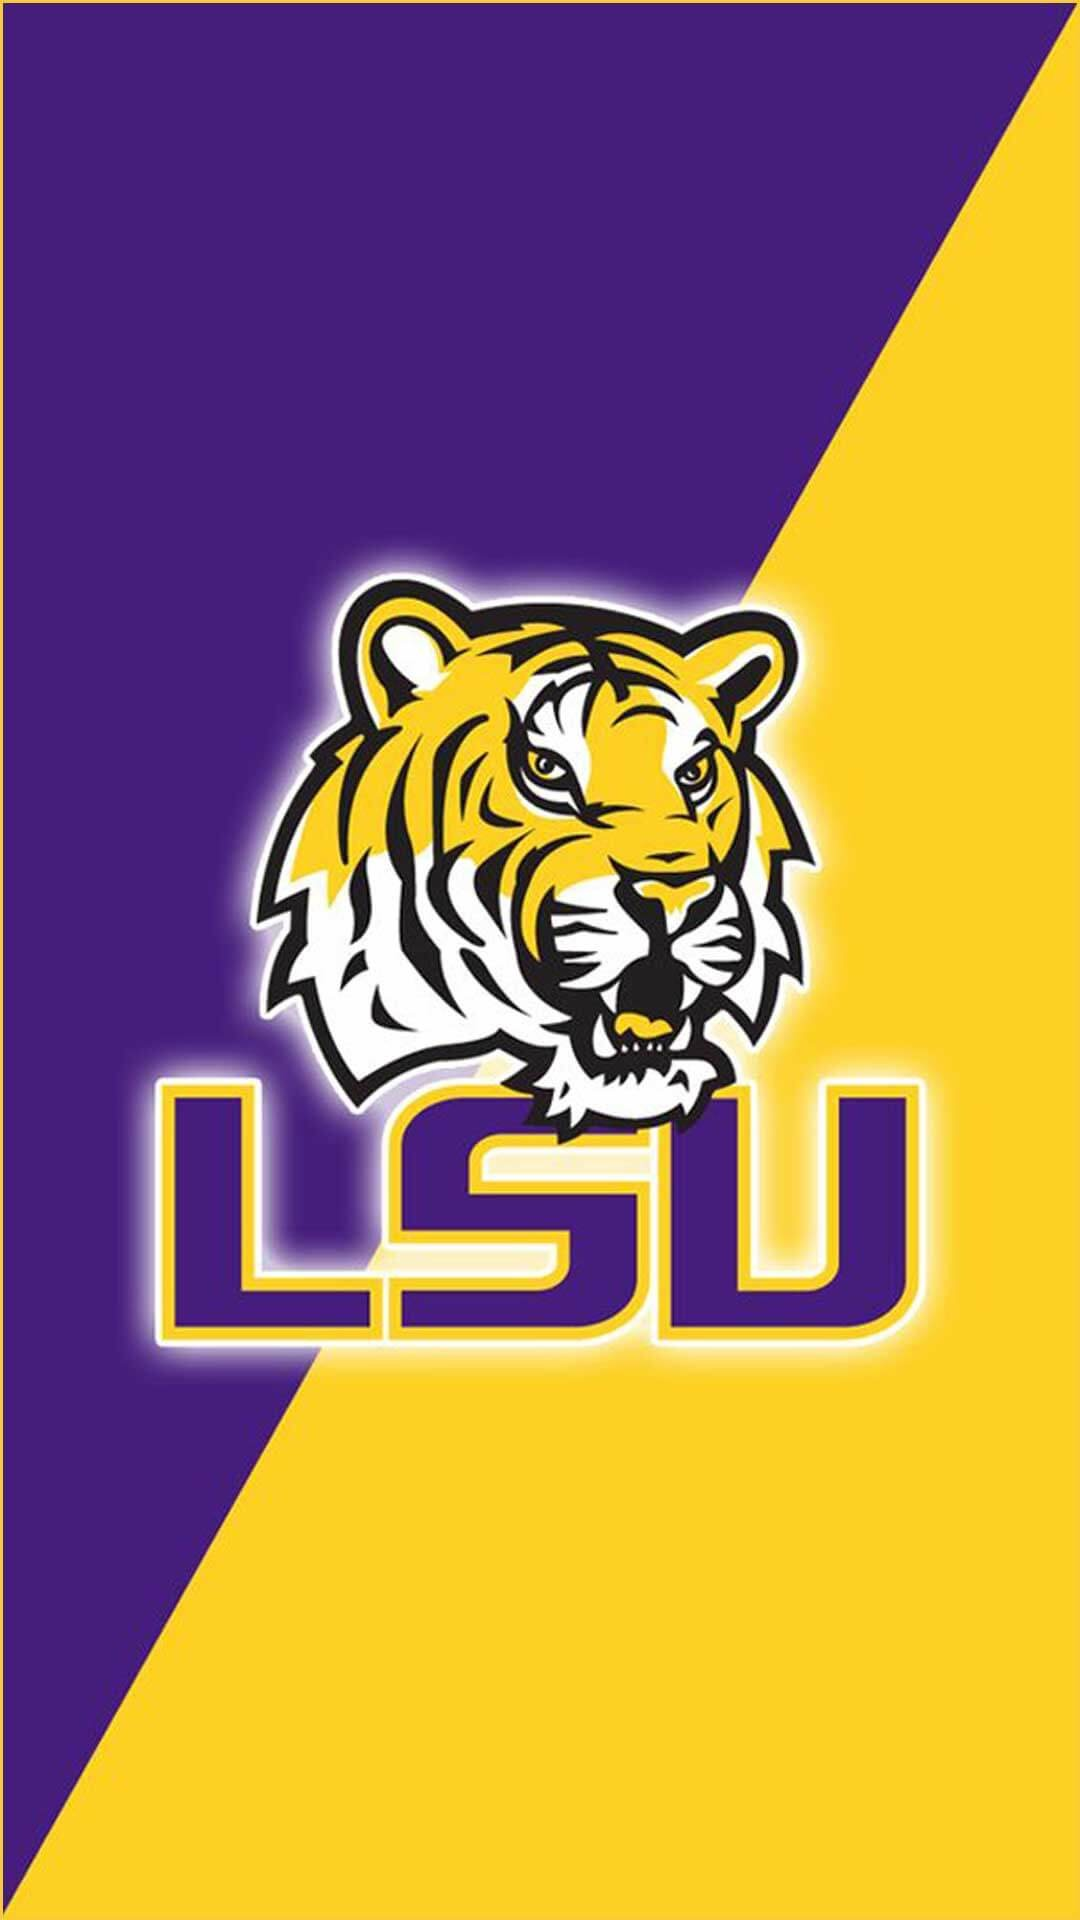 1080x1920 Free LSU Wallpaper for Android and iPhone